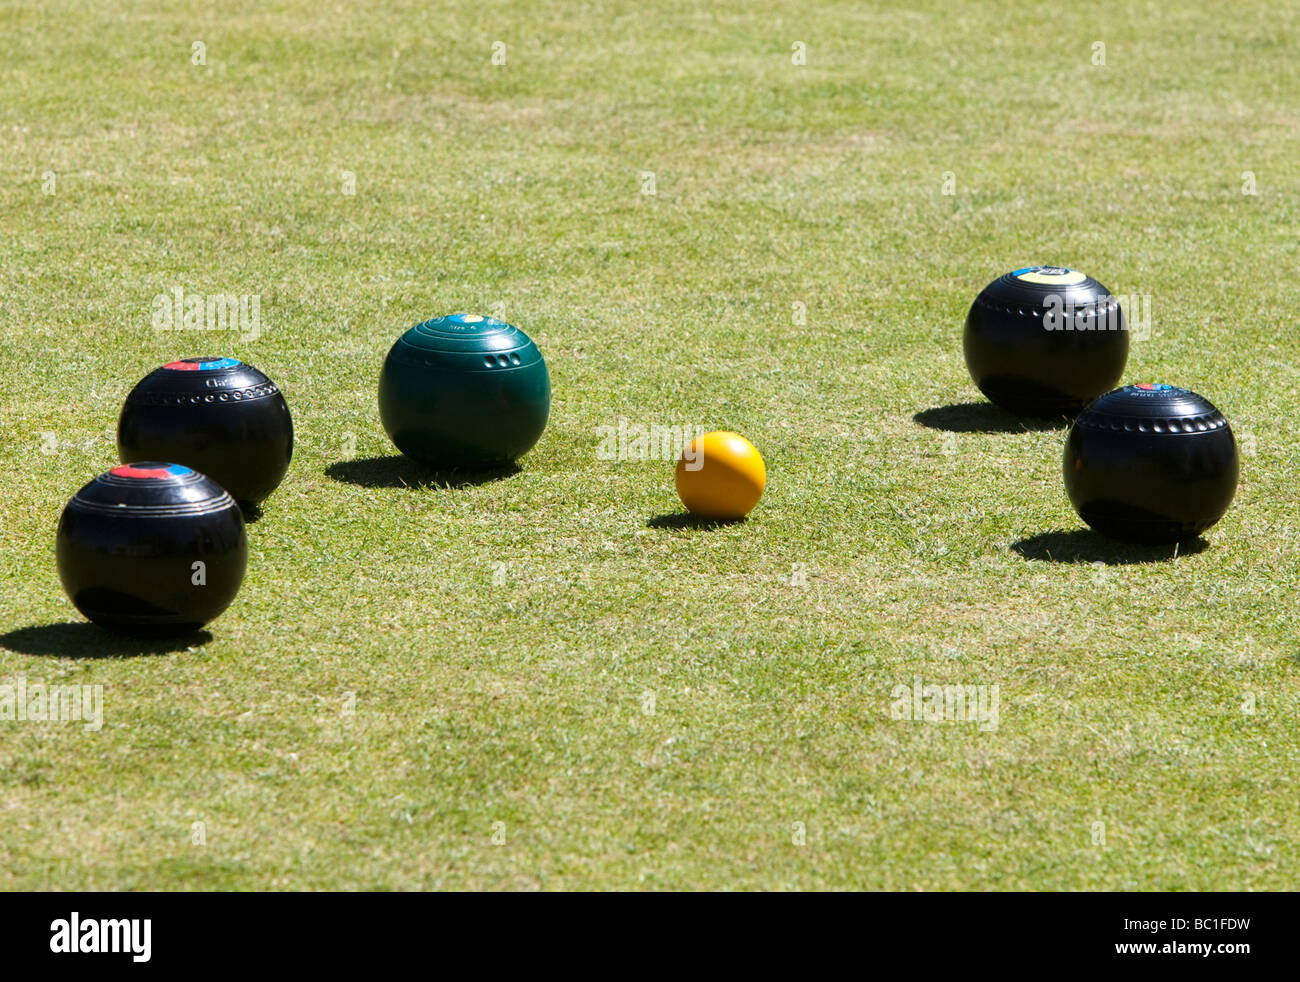 Woods surround the Jack during an afternoon game of bowls - Stock Image